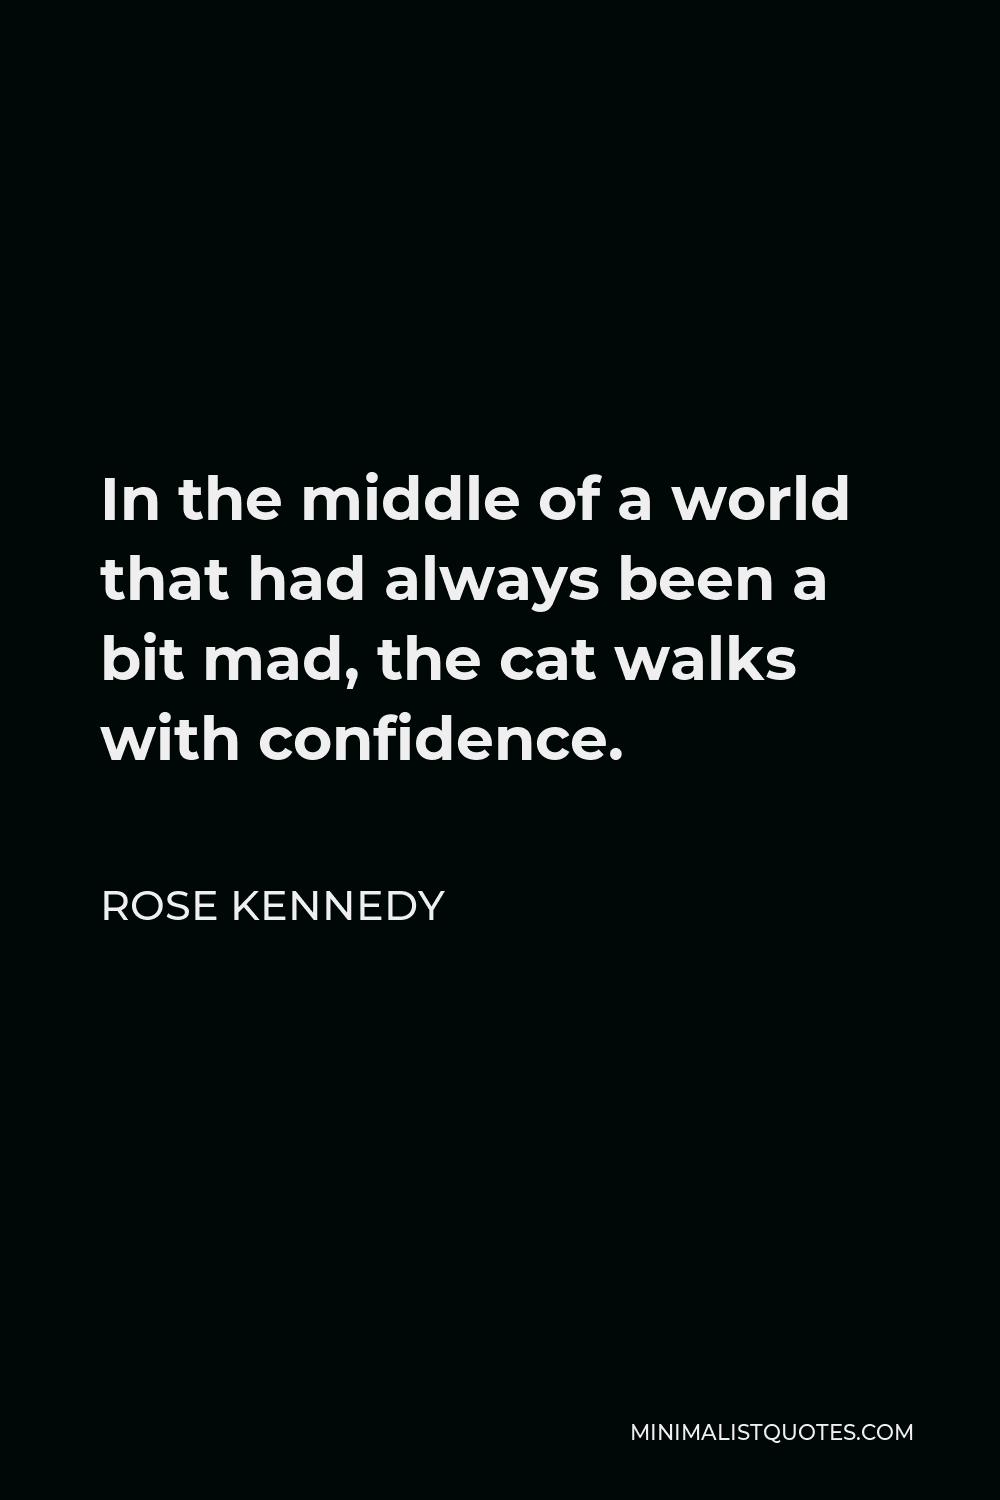 Rose Kennedy Quote - In the middle of a world that had always been a bit mad, the cat walks with confidence.